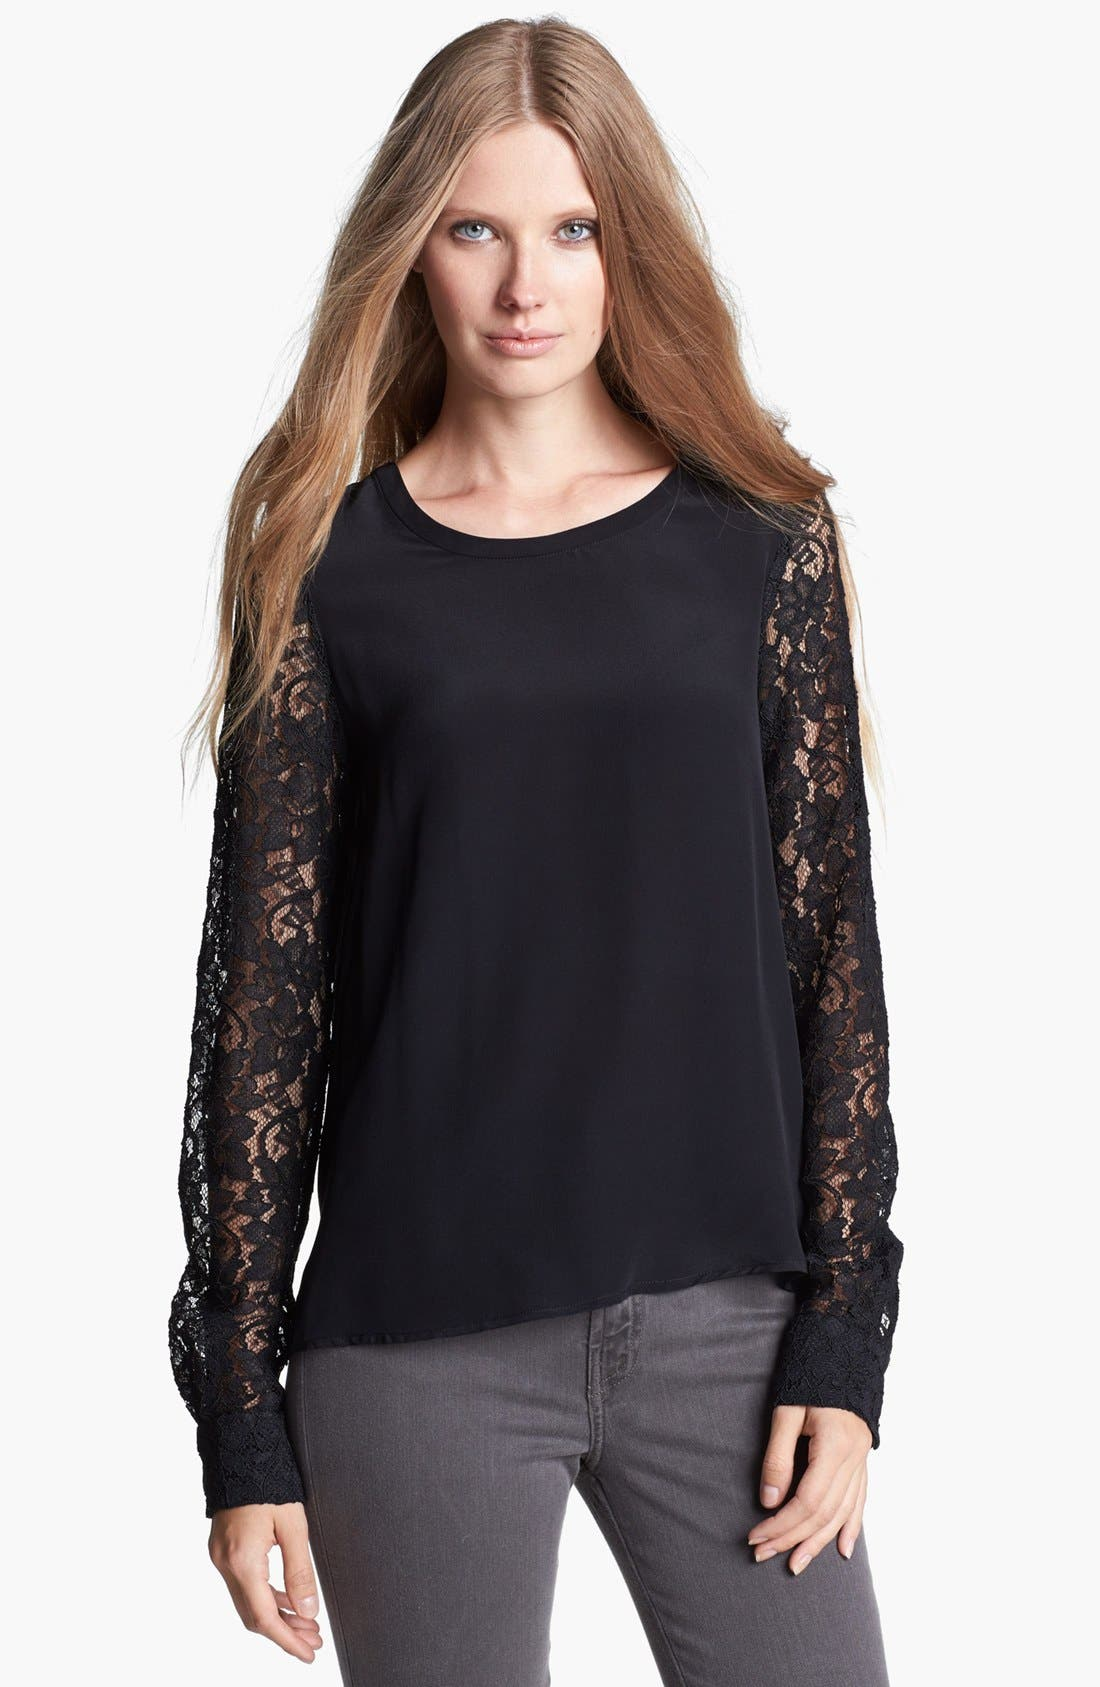 DIANE VON FURSTENBERG, 'Louisa' Lace Sleeve Silk Top, Main thumbnail 1, color, 001